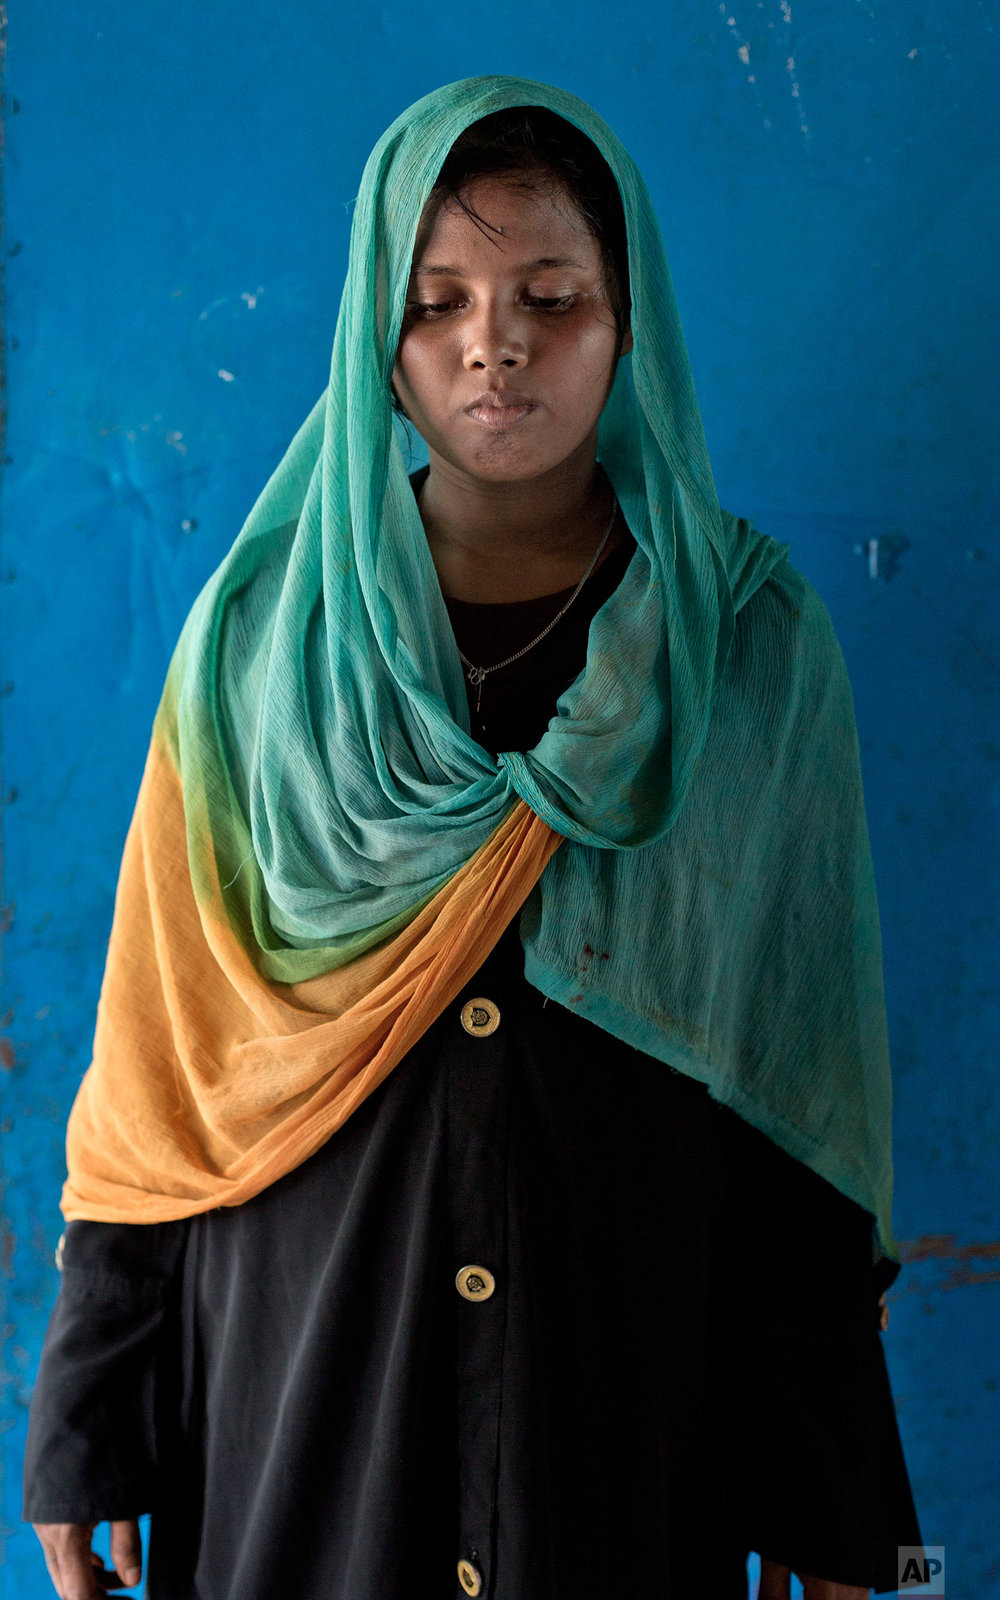 In this Oct. 1, 2017, photo, 18-year old survivor of a boat capsize Sazida Begum, from Myanmar's Moidaung Village, stands for a photograph at a transit shelter at Kutupalong camp for newly arrived Rohingya refugees in Bangladesh. Begum's mother and two sisters  drowned when a boat they were traveling in, to make their escape from Myanmar, capsized on Sept. 28. She survived along with her father Mohamed Kasim and three siblings. (AP Photo/Gemunu Amarasinghe)